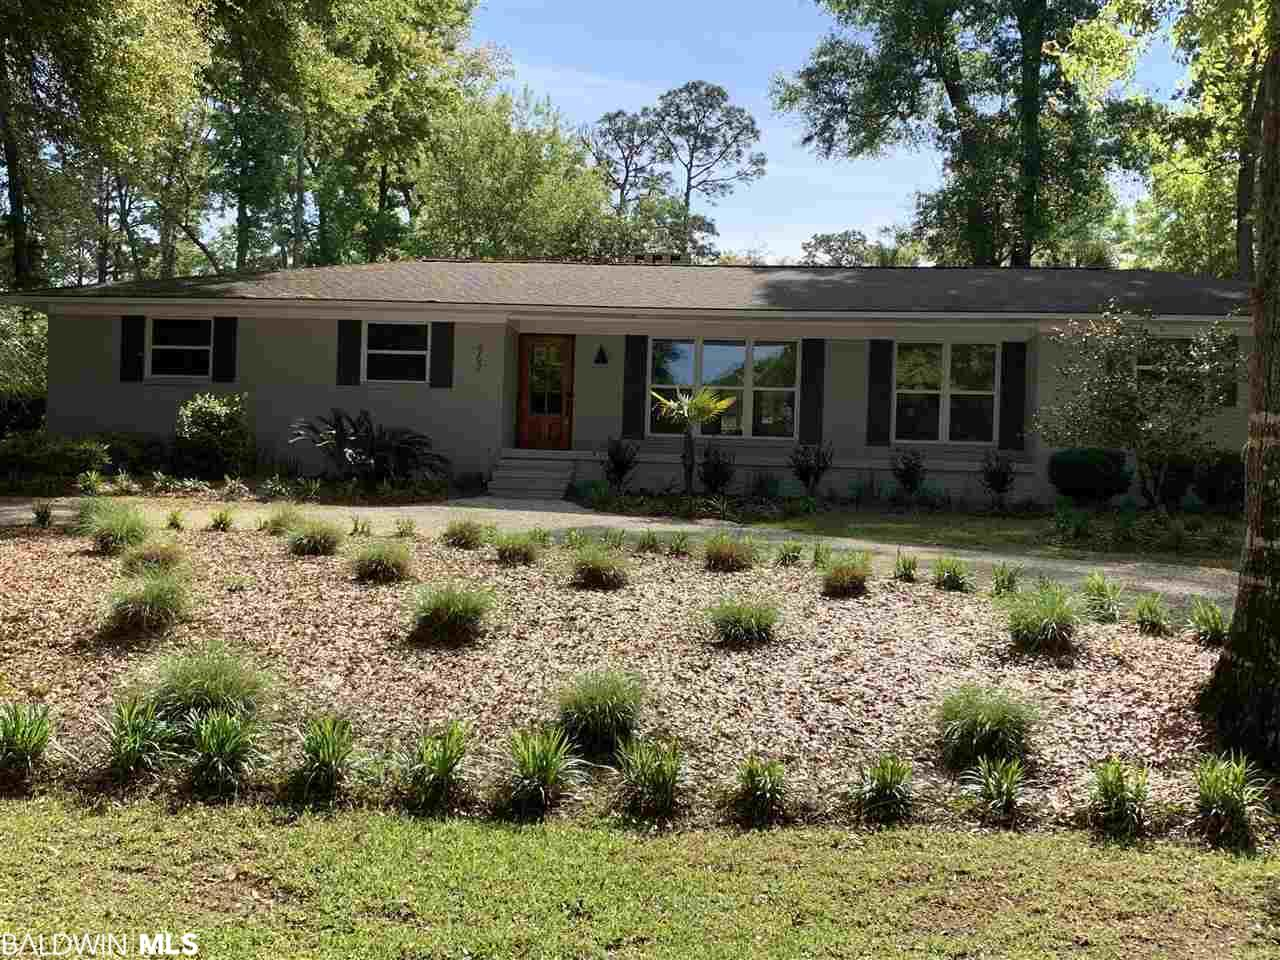 Location! Location!  This cute Cottage sits on two lots across from Mobile Bay w/bay access.  Brick, 4 bdrms, 2 baths, wonderful Florida room across the back, two car attached garage w/fenced back yard.Close to town and beaches. Many upgrades including new front door.